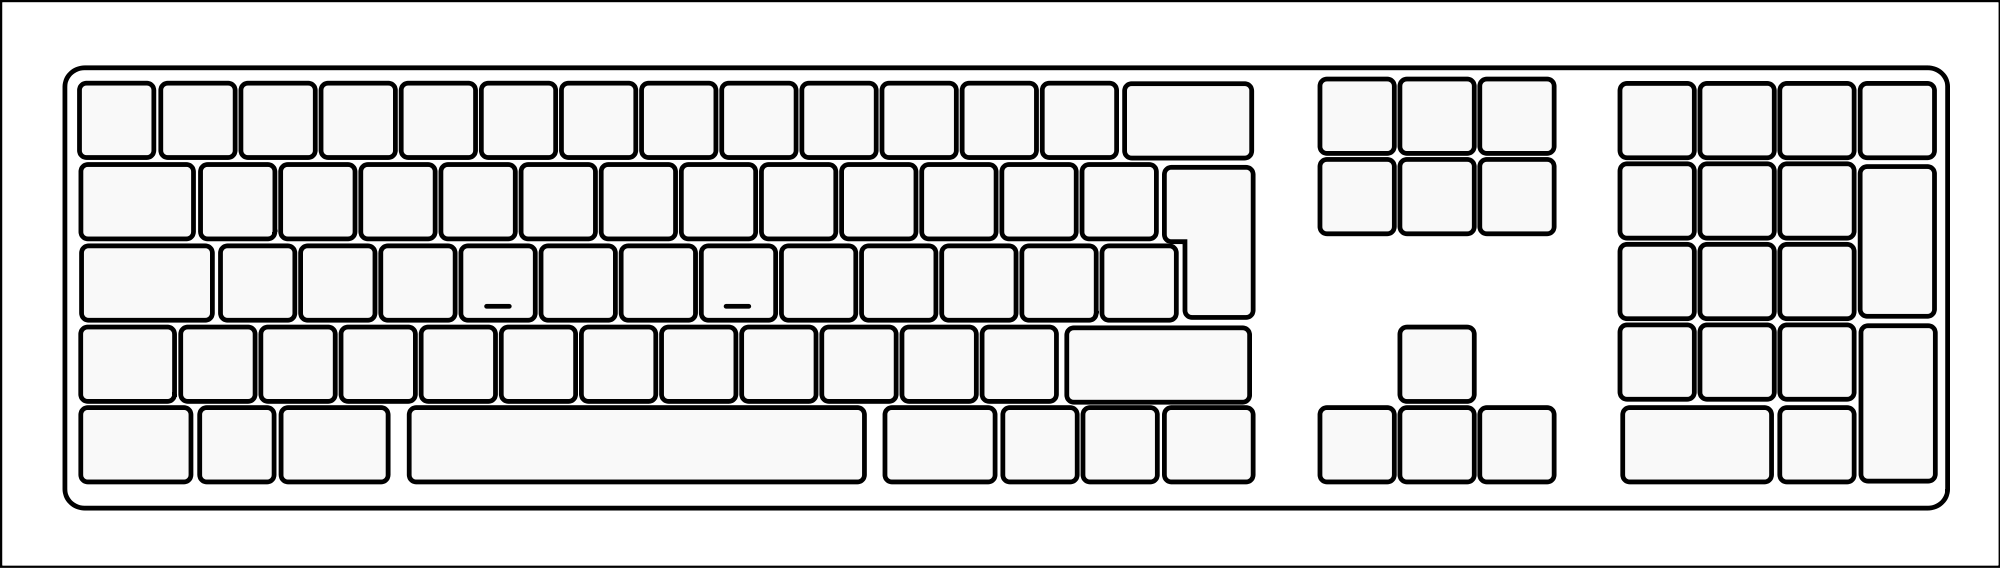 Drawing keyboard blank. Collection of computer